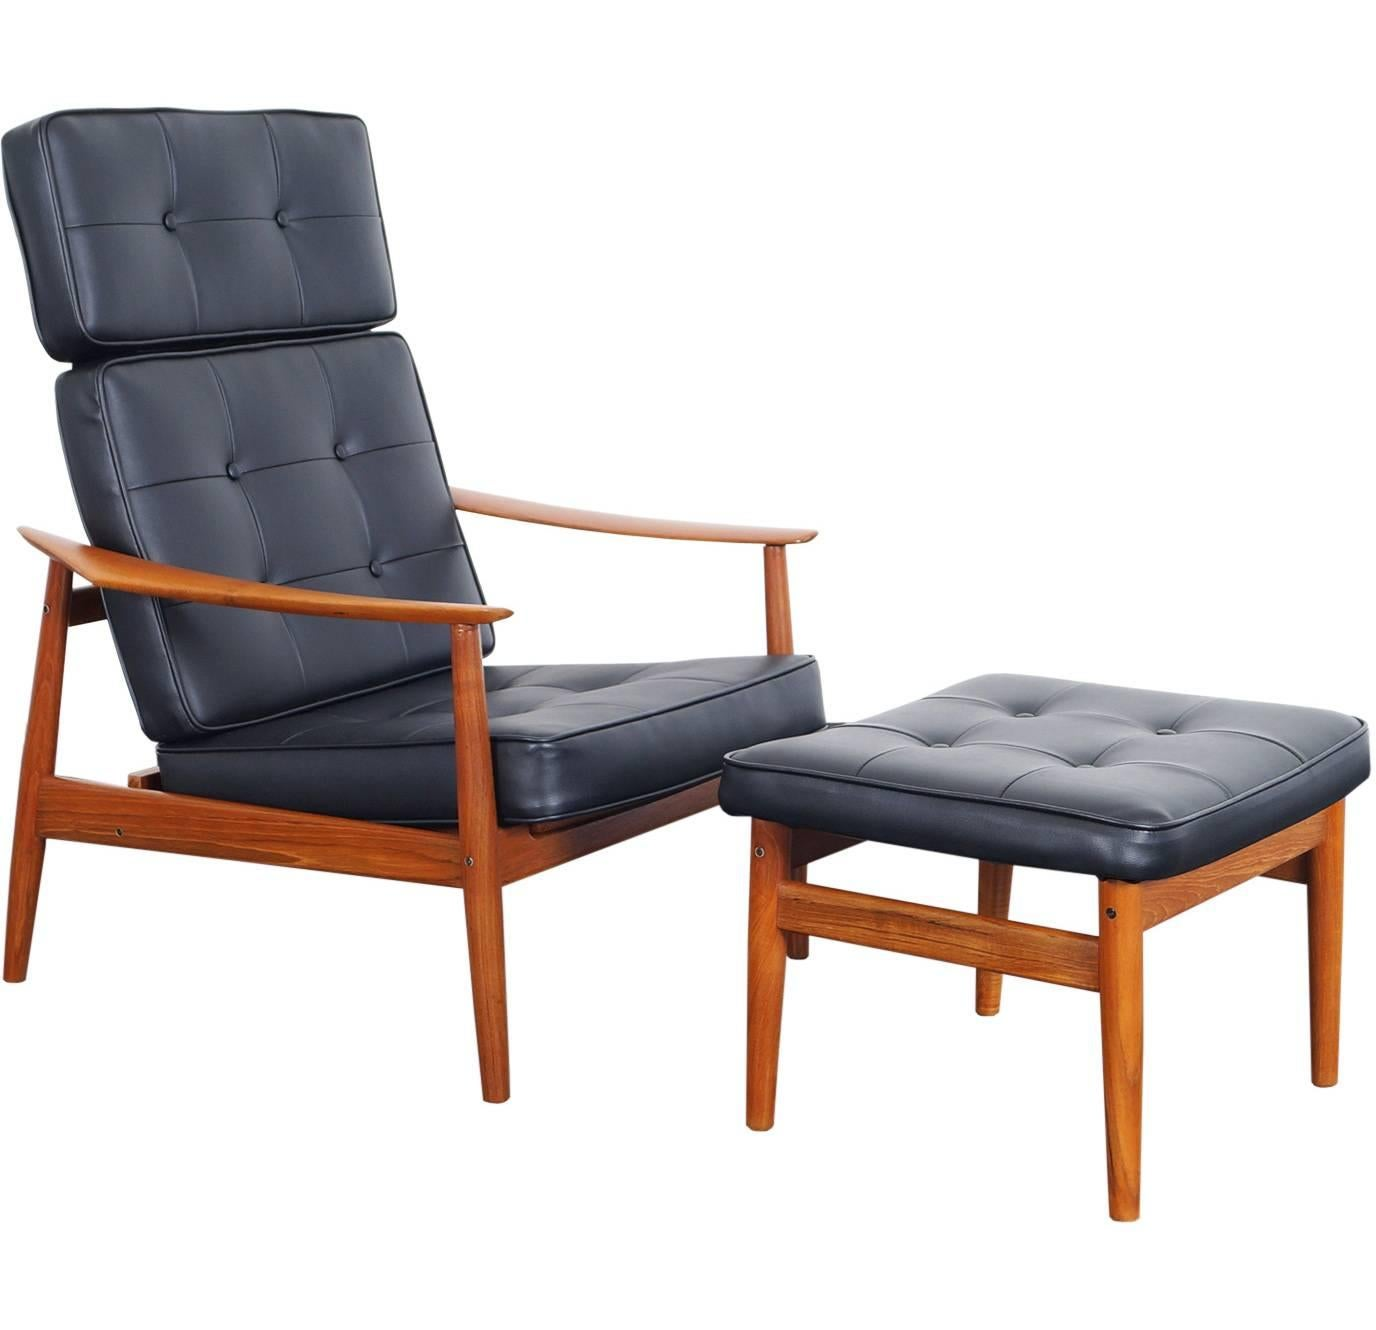 Danish Modern Reclining Lounge Chairs and Ottoman by Arne Vodder  sc 1 st  1stDibs & Danish Modern Contura Zero Gravity Recliner Chair by Modi ... islam-shia.org